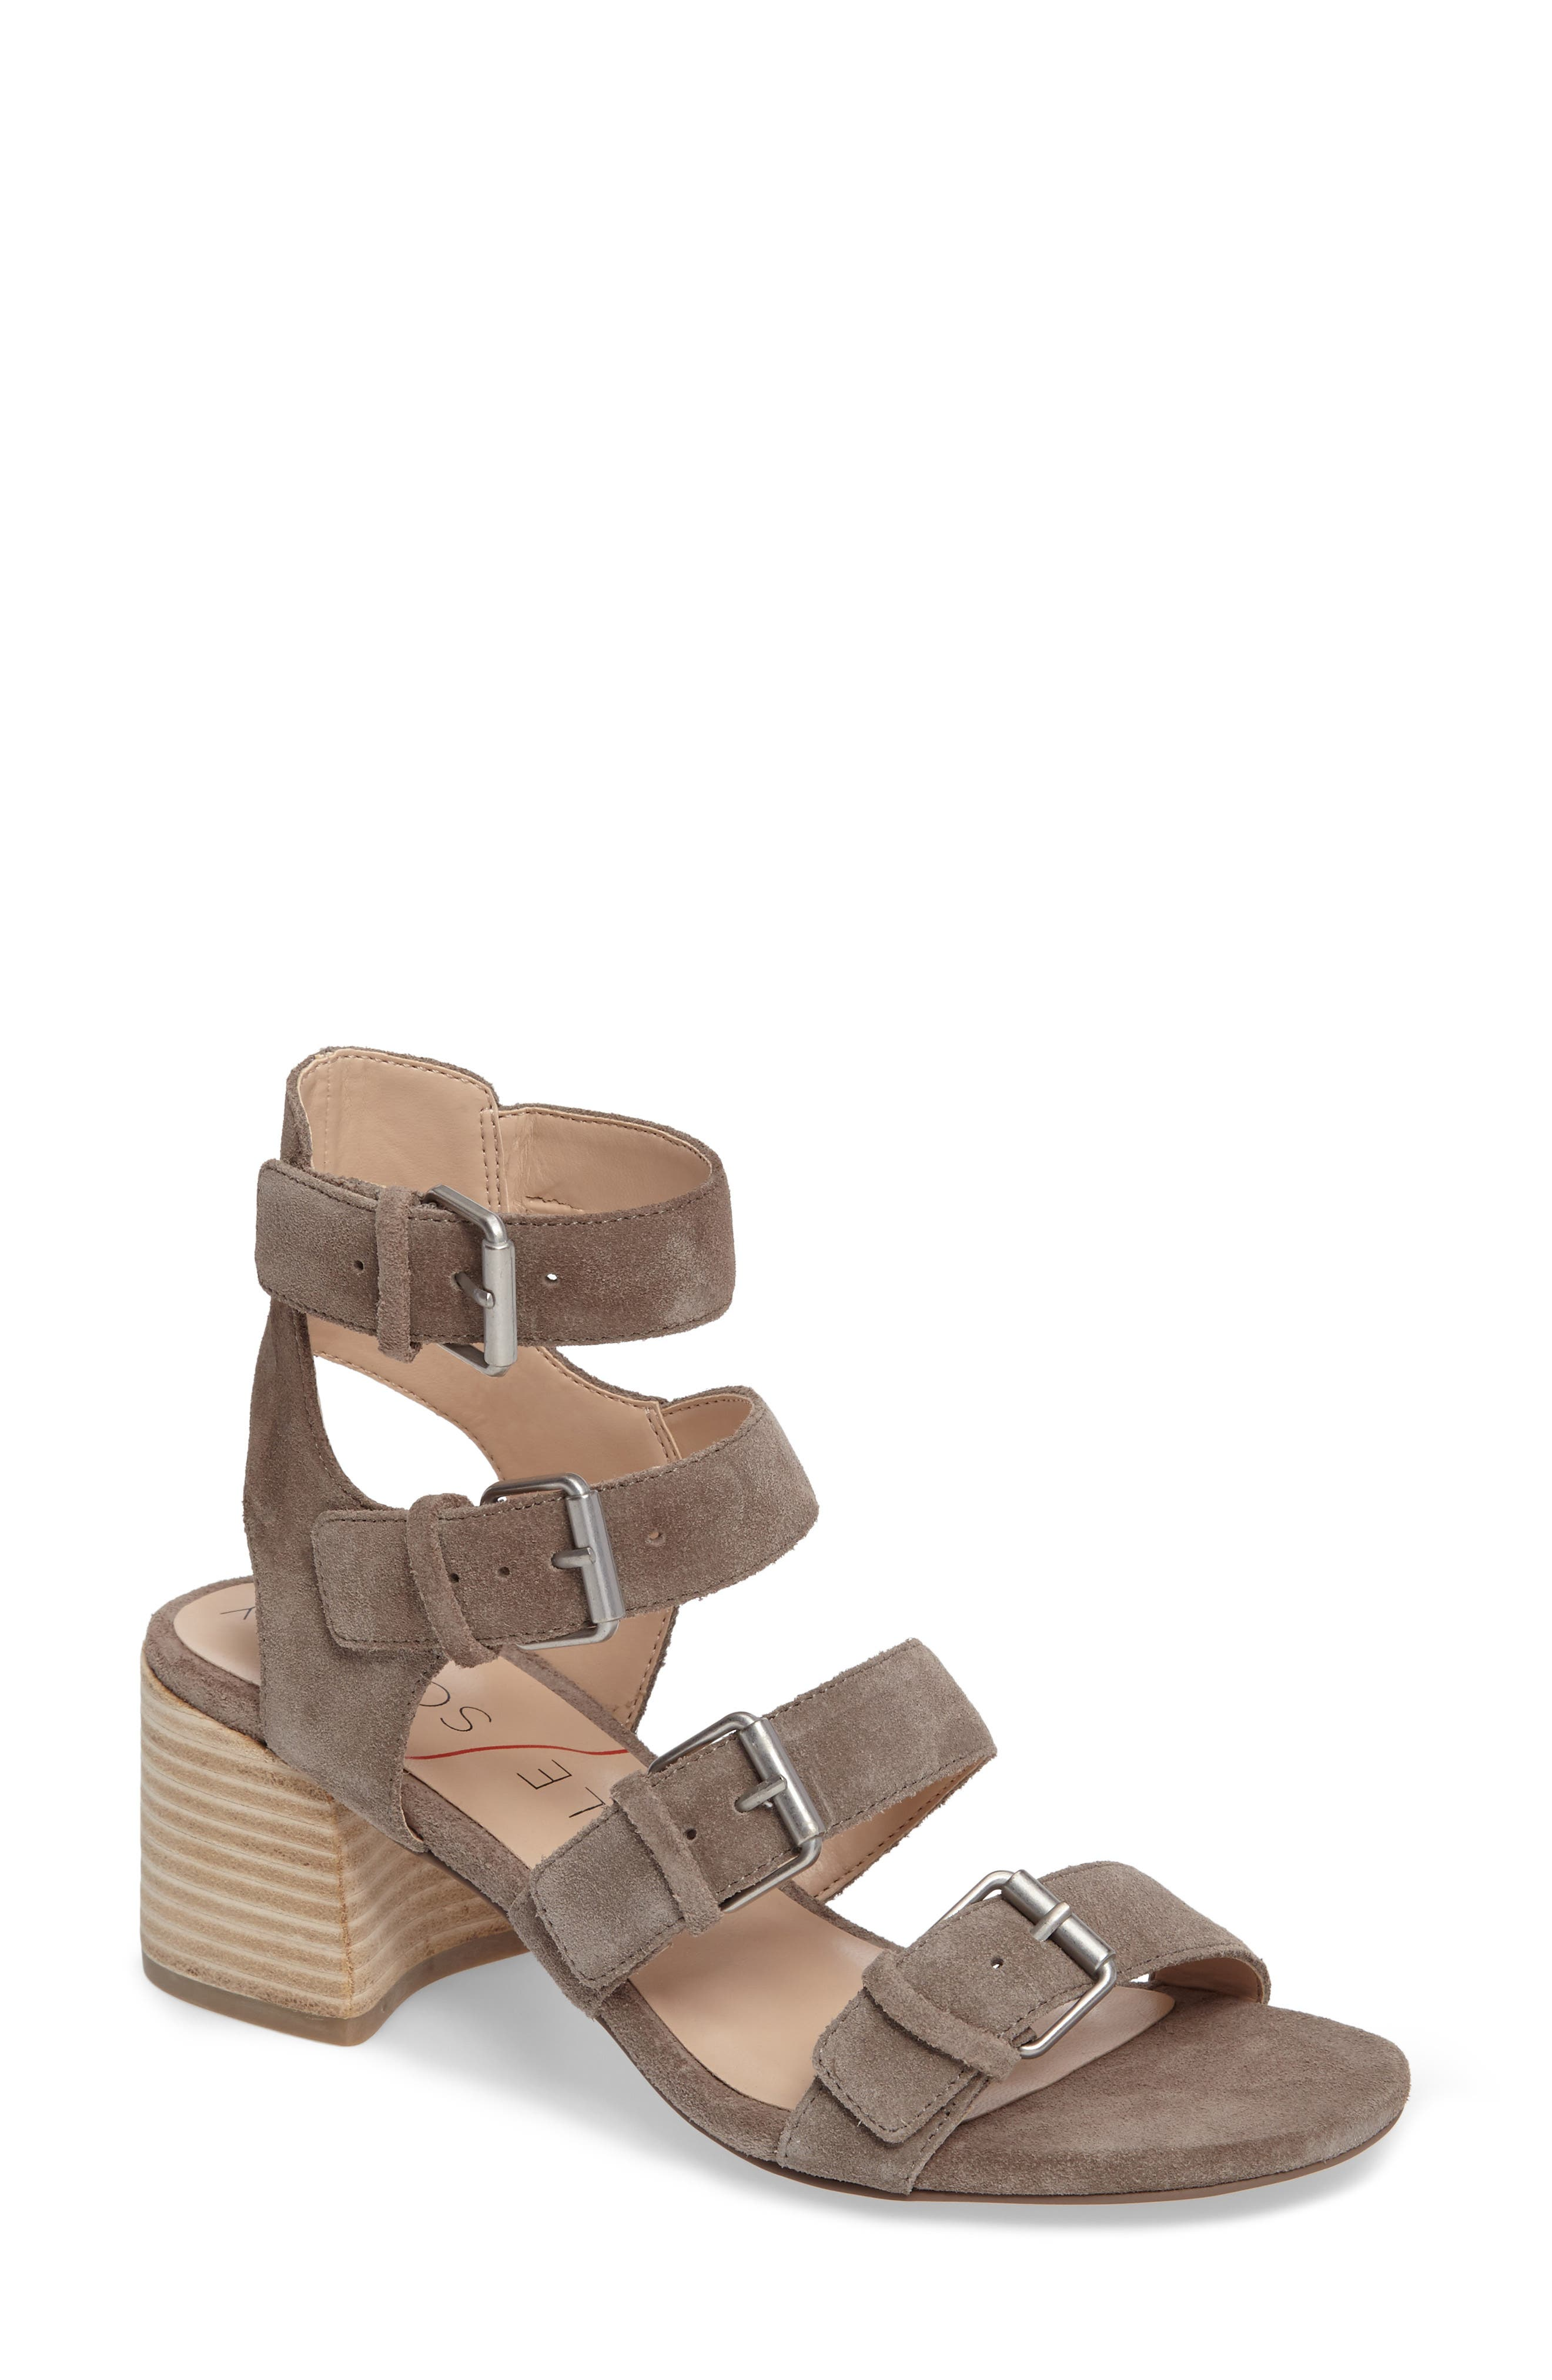 Main Image - Sole Society Culver Block Heel Sandal (Women)